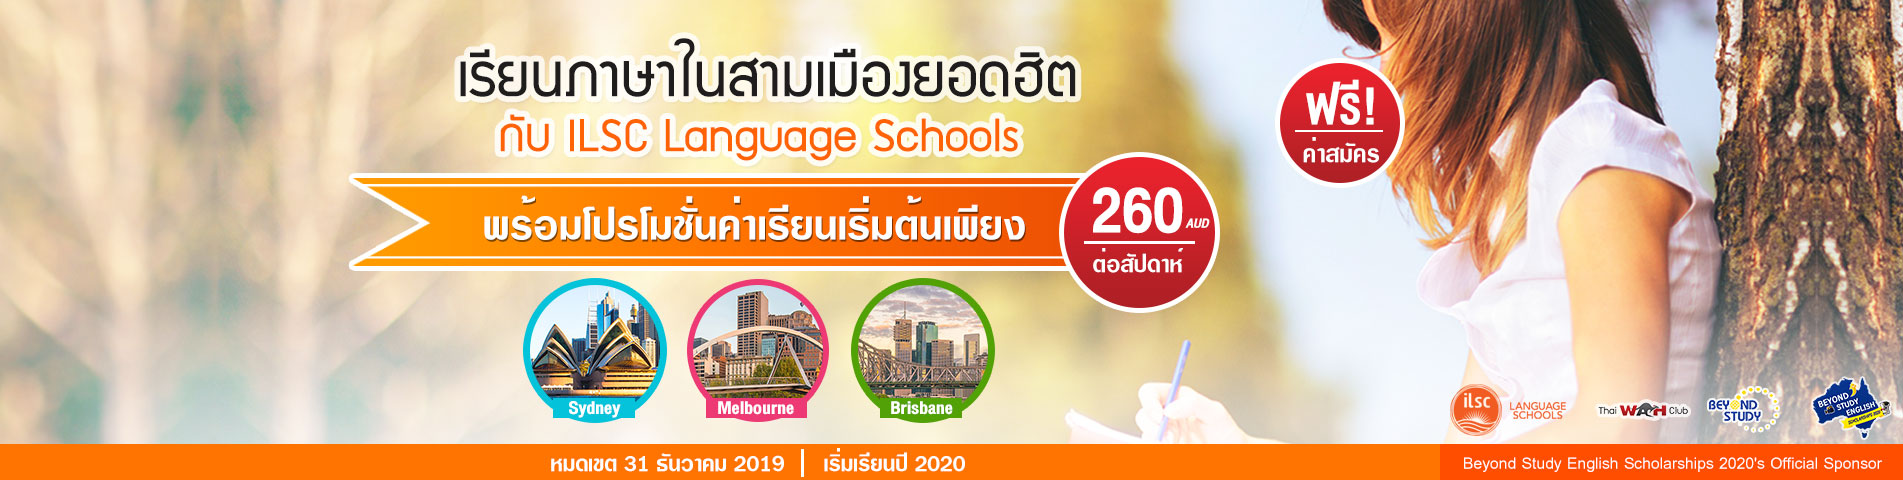 ILSC-for-Study-English-in-Australia-Scholarships-2020